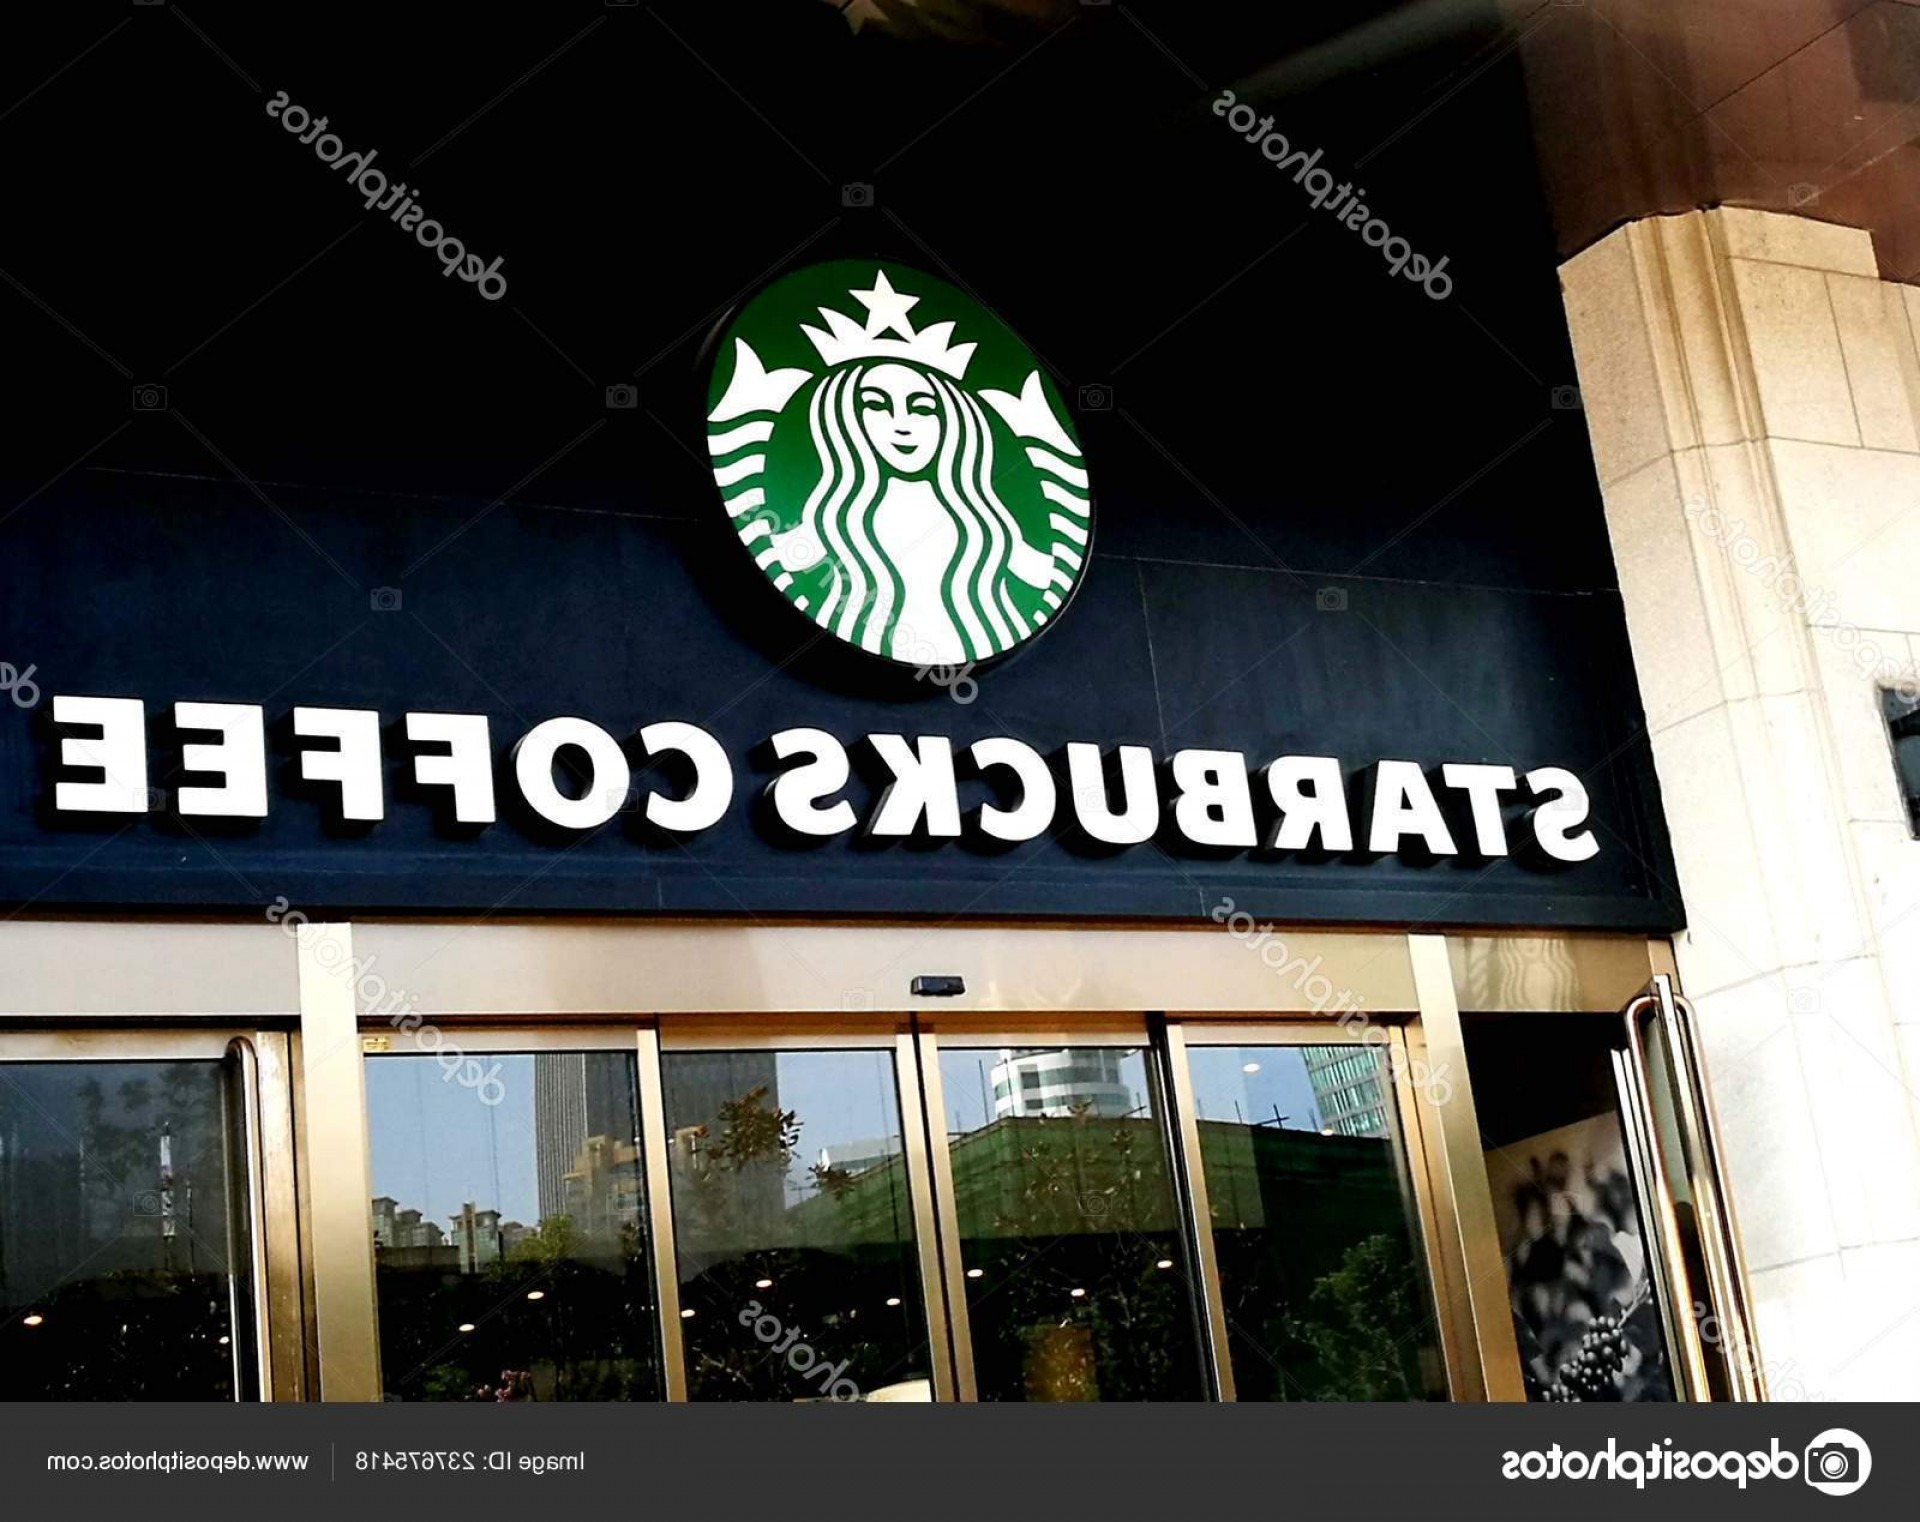 Starbucks China Vector: Stock Photo View Cafe Starbucks Coffee Huaibei